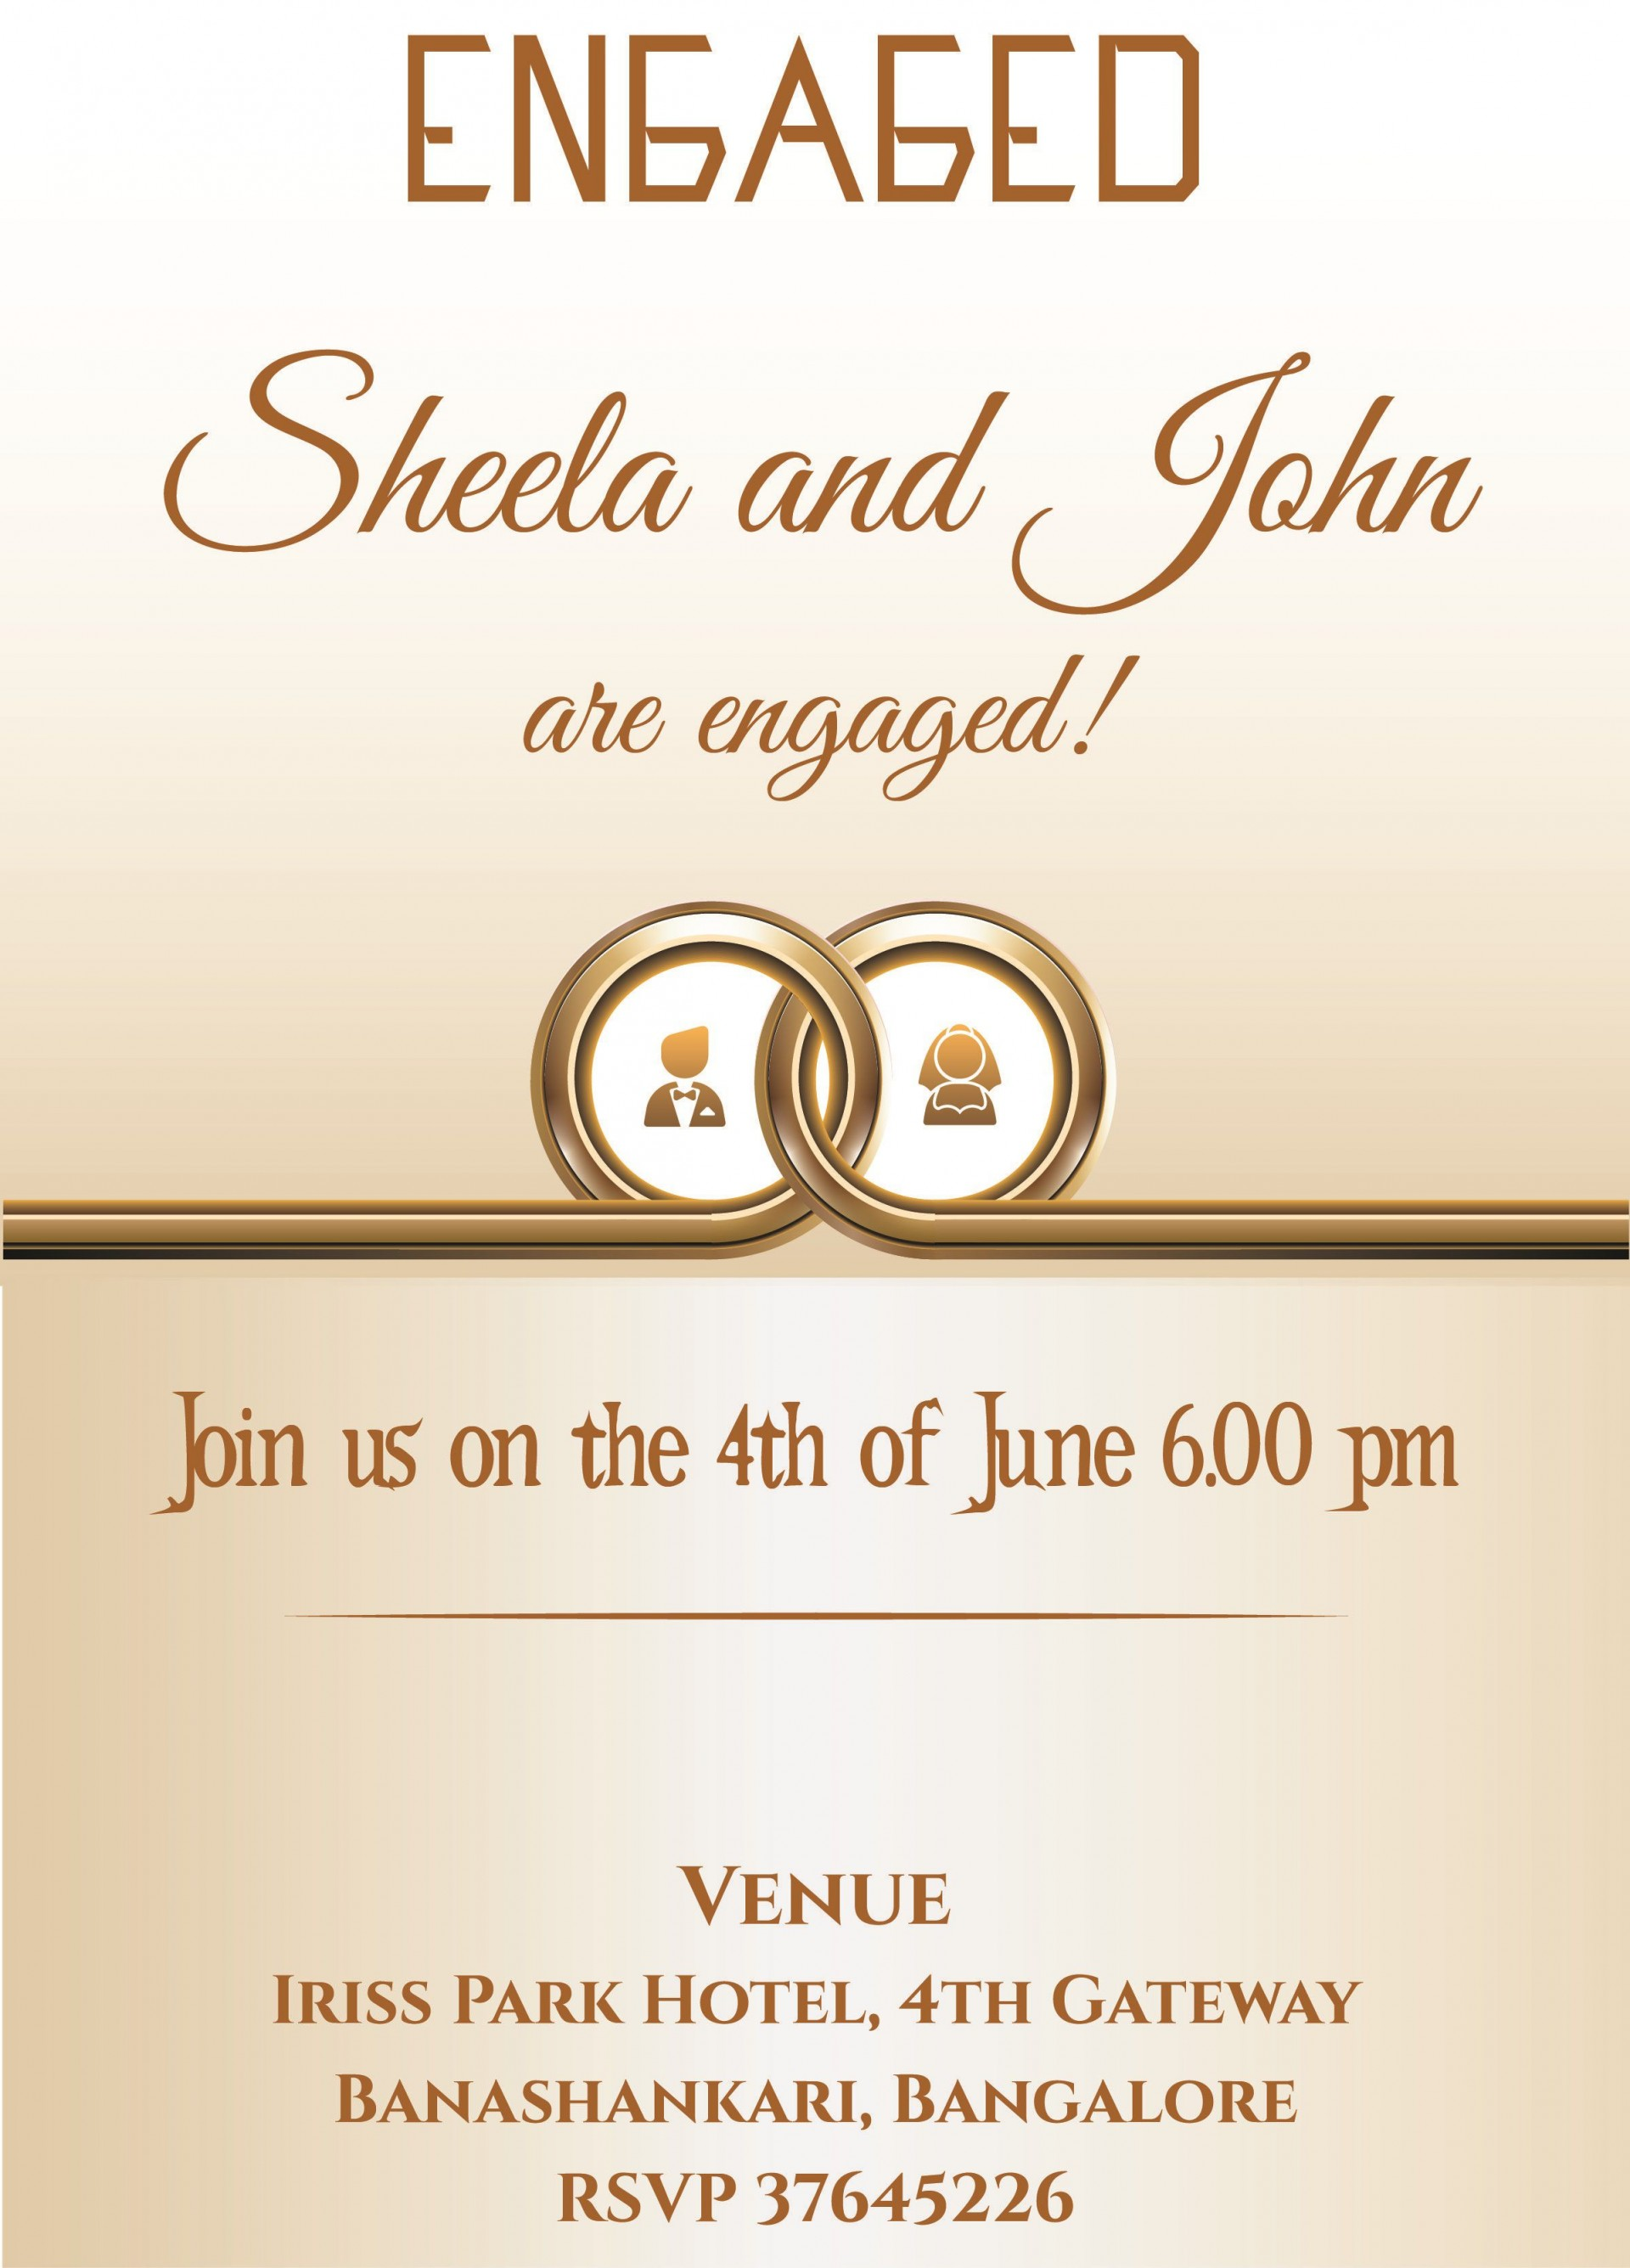 002 Breathtaking Free Engagement Invitation Template Online With Photo Highest Clarity 1920